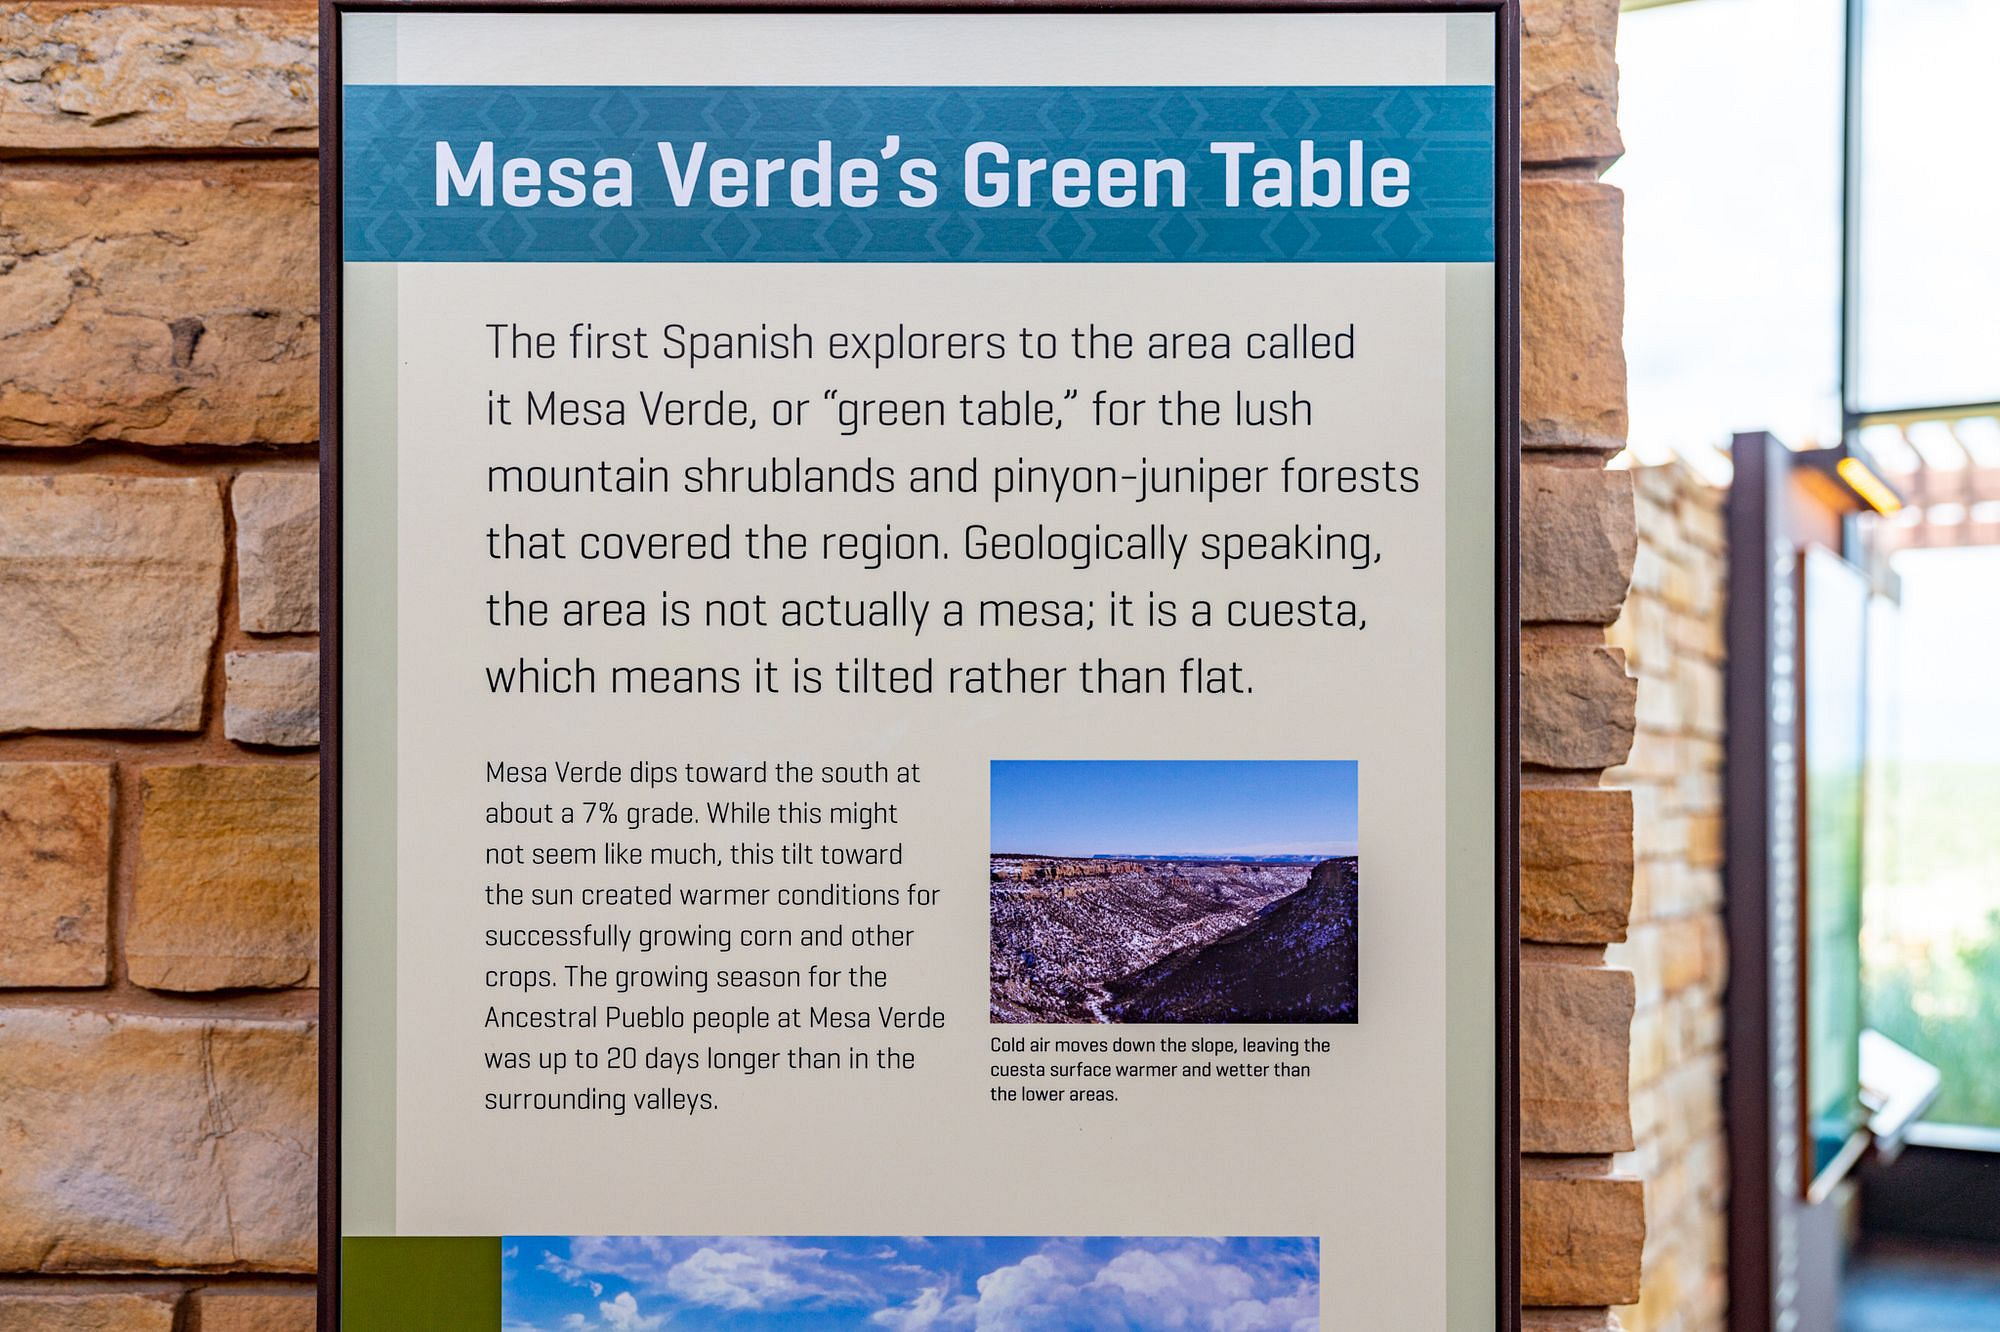 Mesa Verde's Green Table